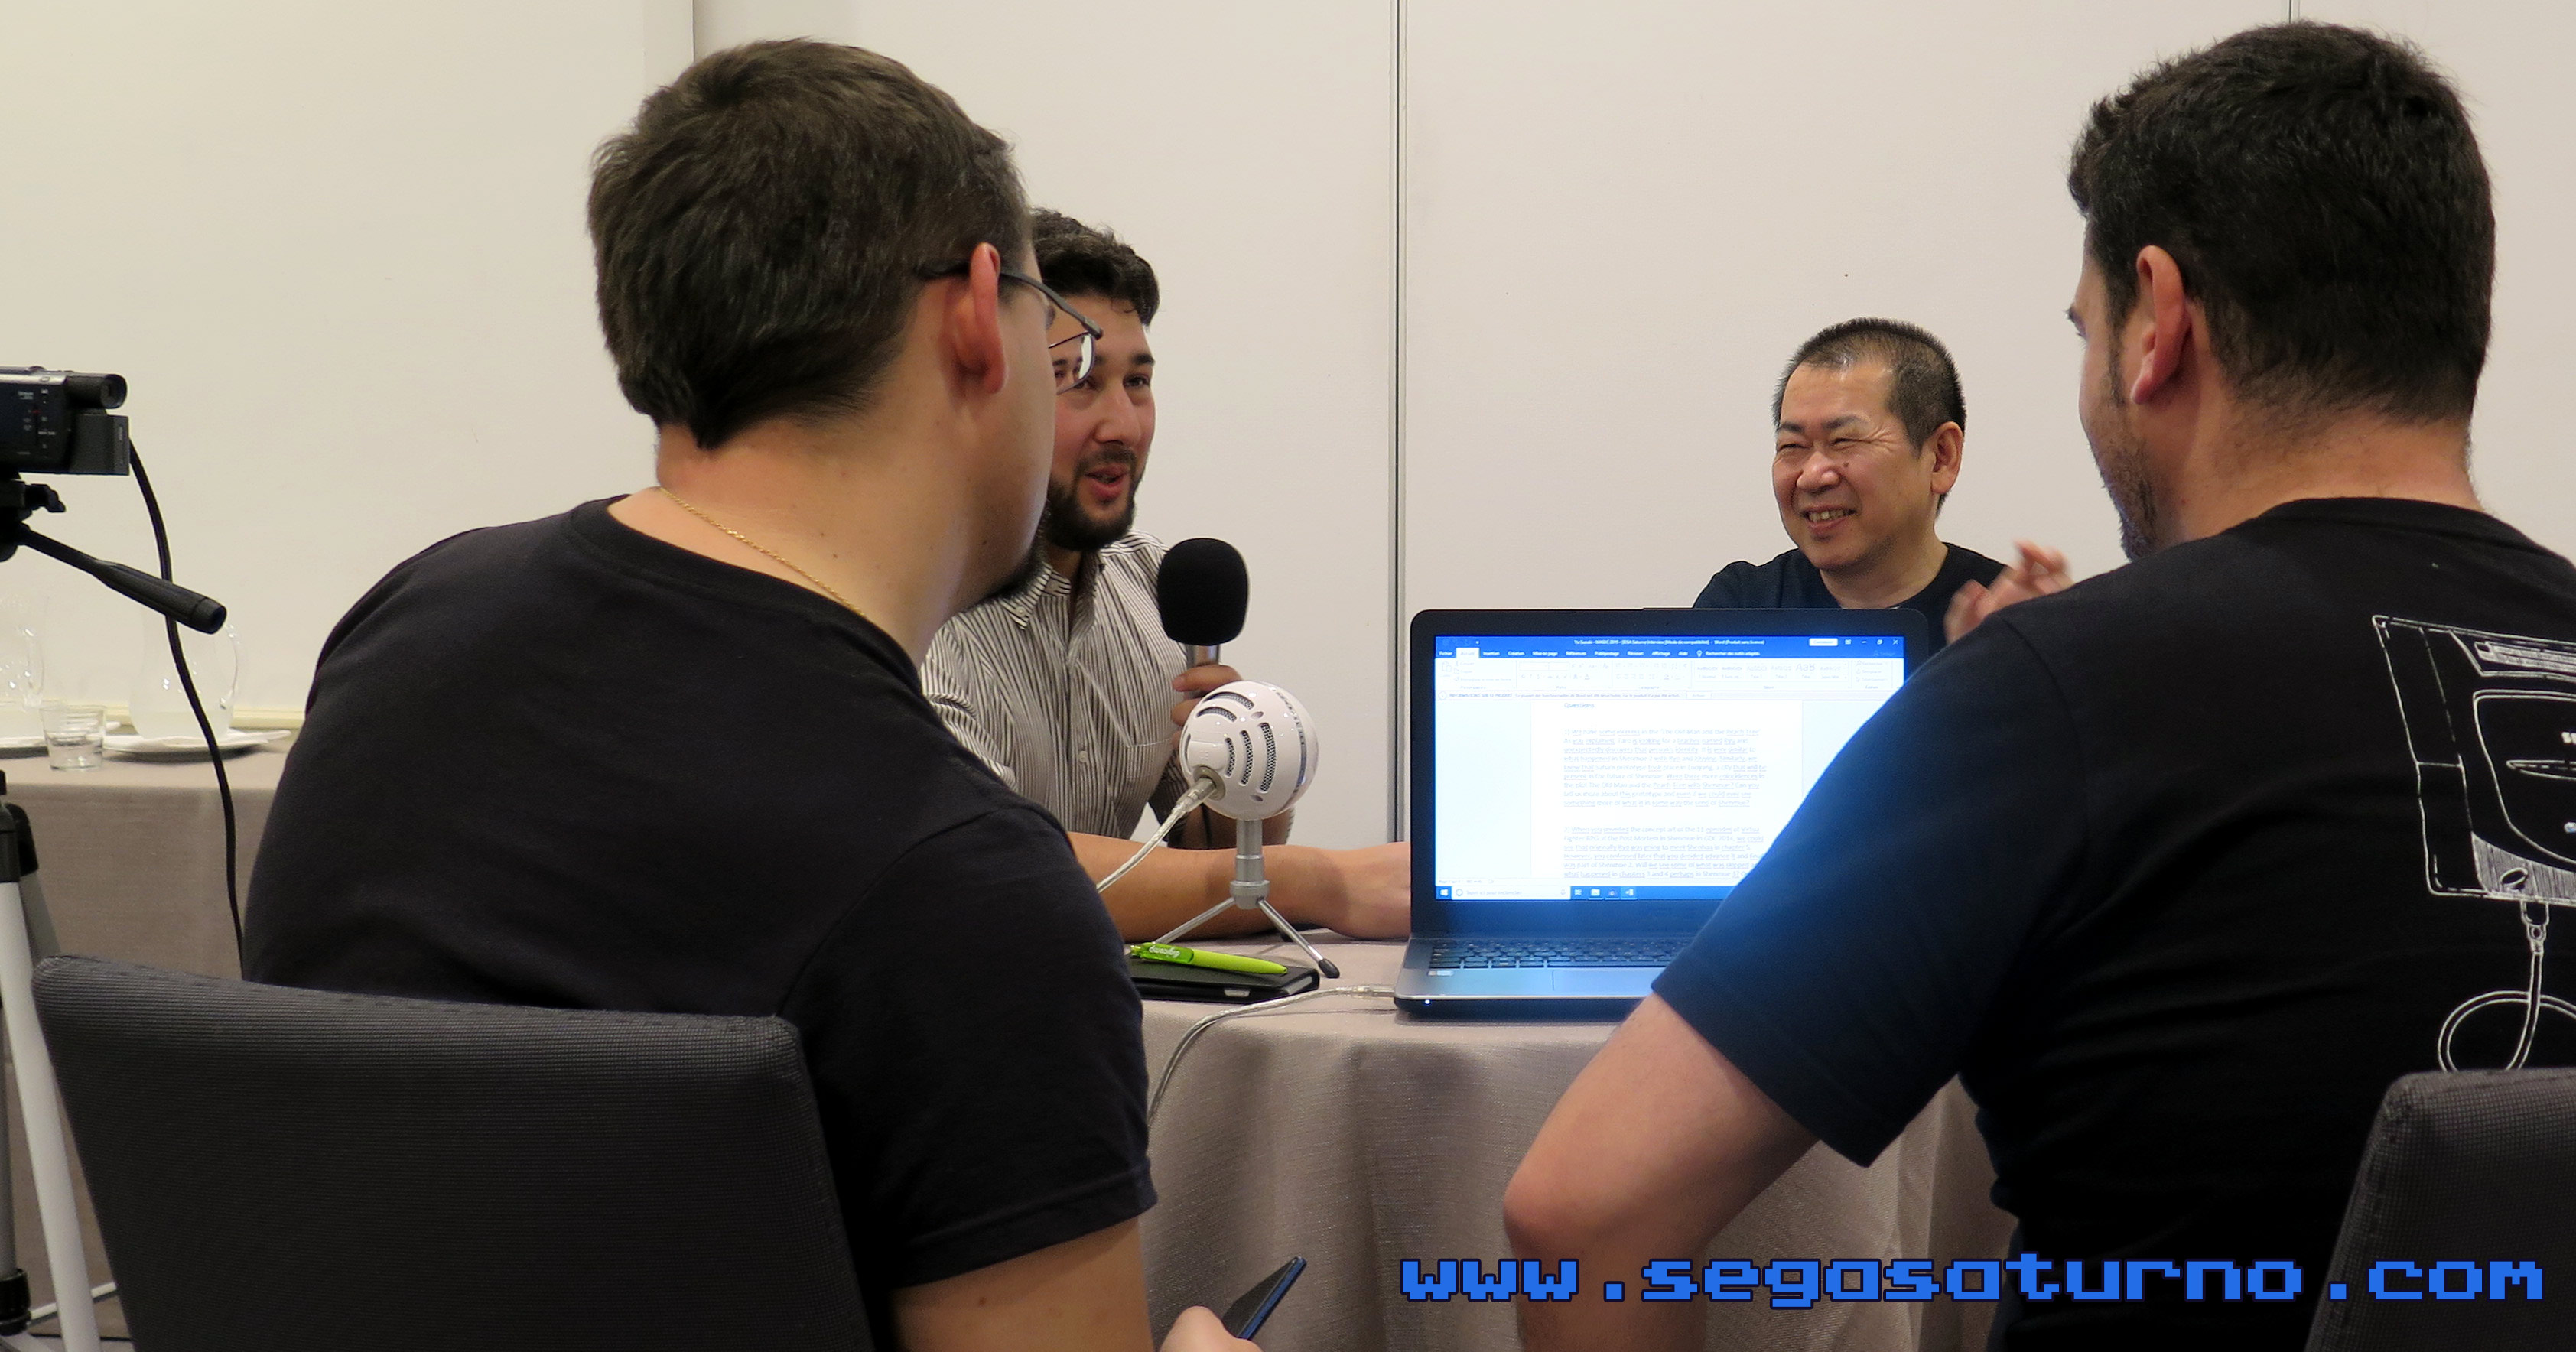 Yu Suzuki Shibuya Productions interview entrevista 2019 Agente Requejo Ryo Alfon Suzuki Magic Monaco Shenmue III 3 SEGASaturno Spain